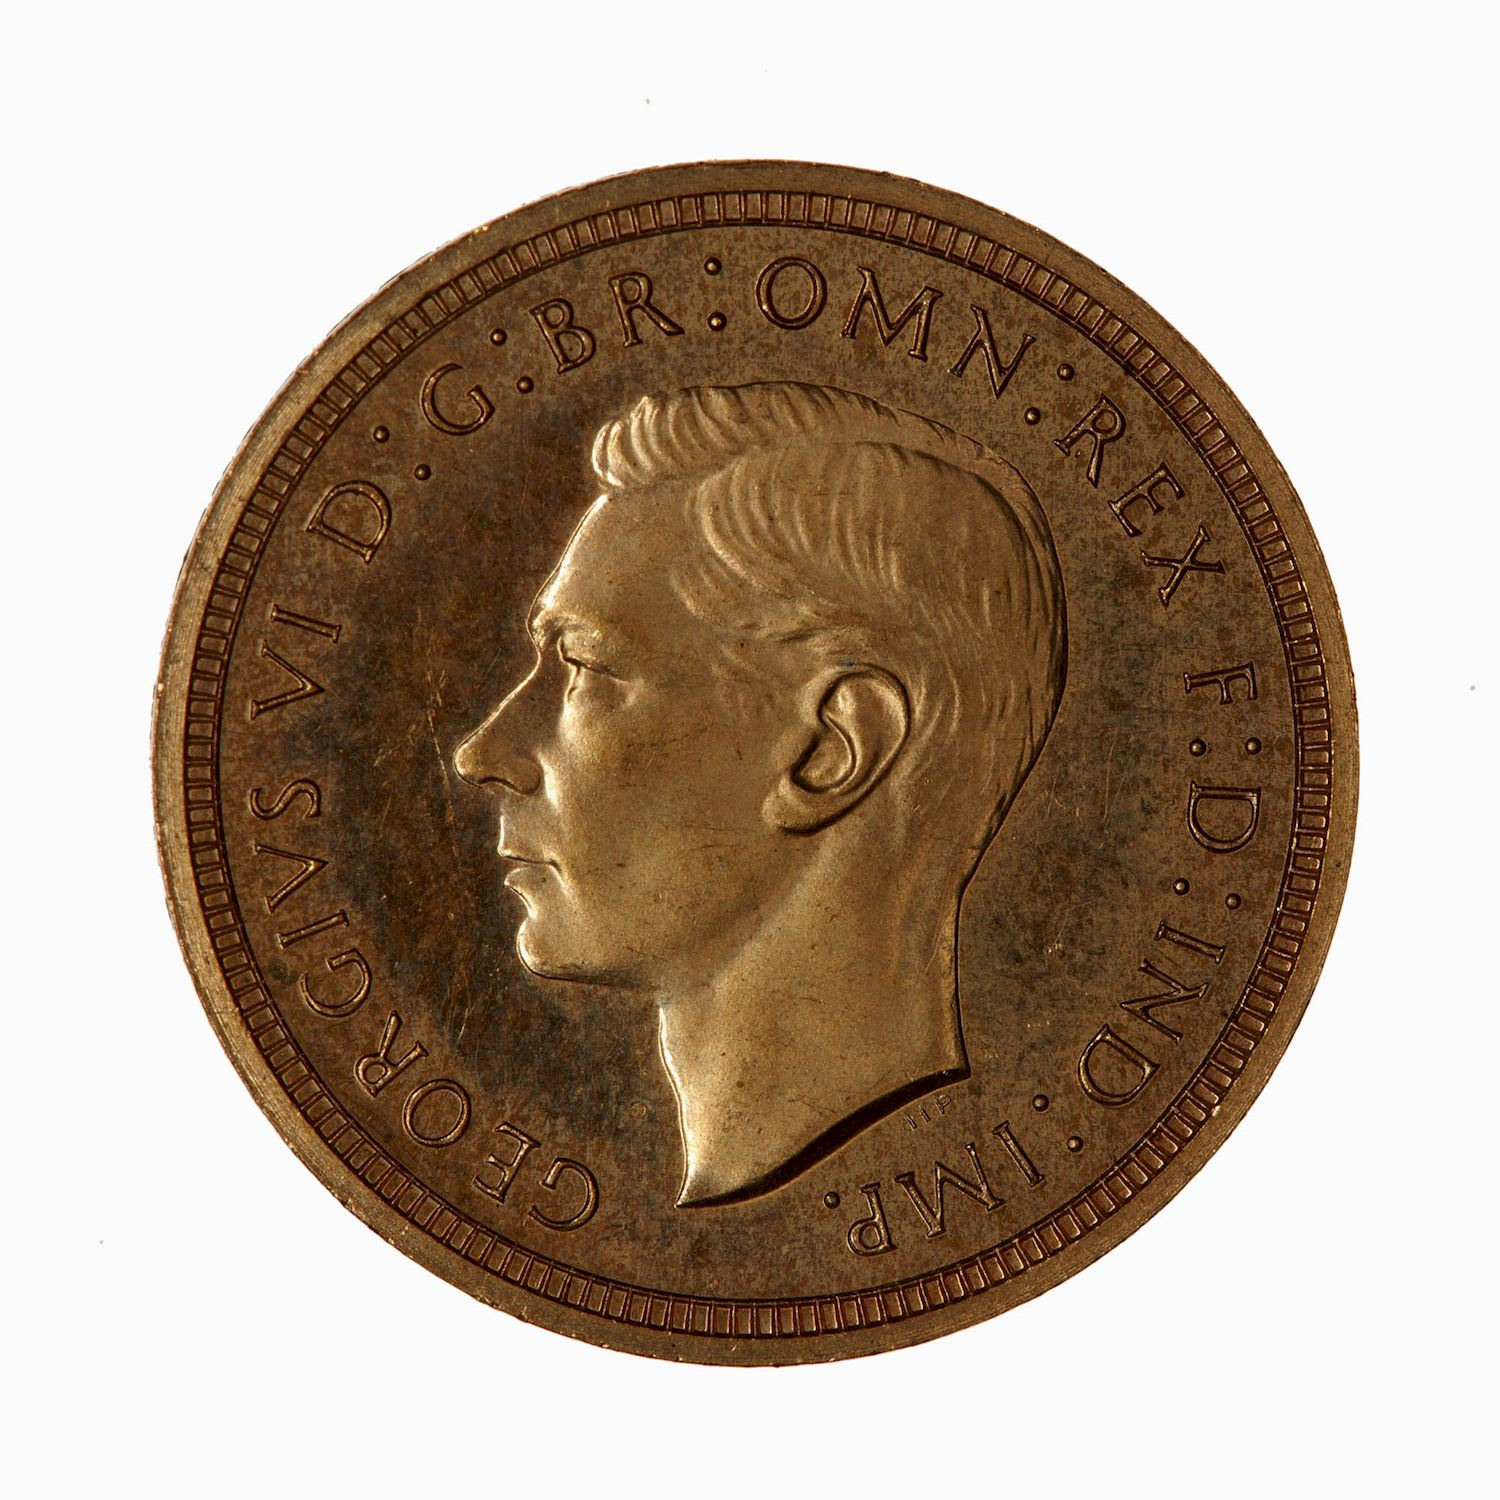 Half Sovereign (Pre-decimal): Photo Proof Coin - Half-Sovereign, George VI, Great Britain, 1937